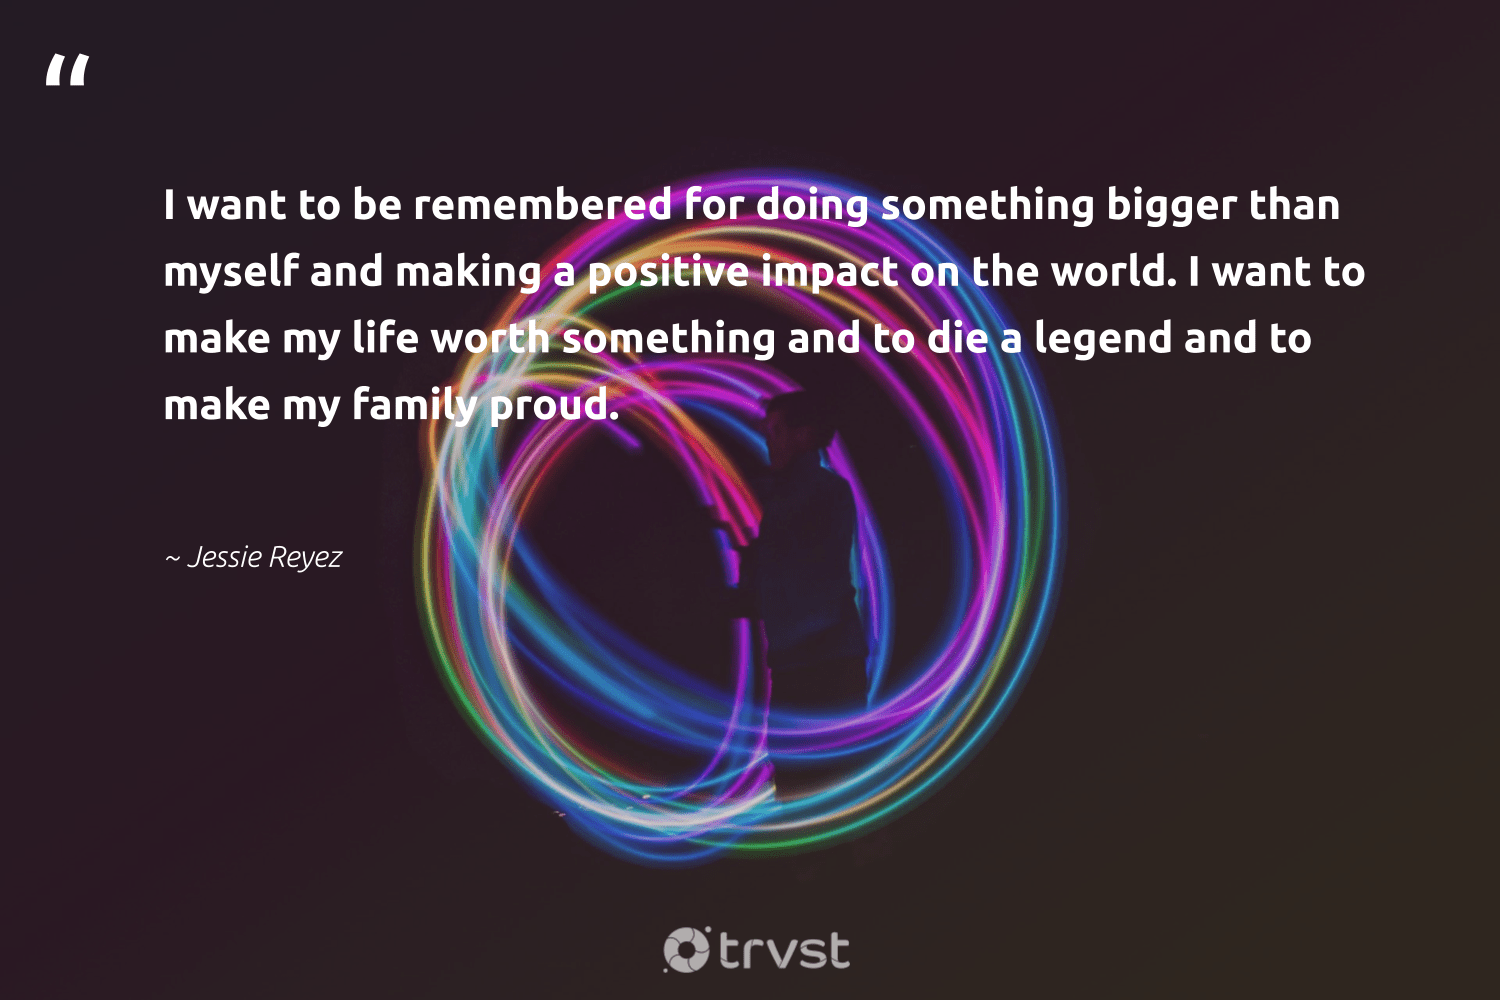 """I want to be remembered for doing something bigger than myself and making a positive impact on the world. I want to make my life worth something and to die a legend and to make my family proud.""  - Jessie Reyez #trvst #quotes #impact #family #ethicalbusiness #socialimpact #dogood #takeaction #socialchange #bethechange #weareallone #gogreen"